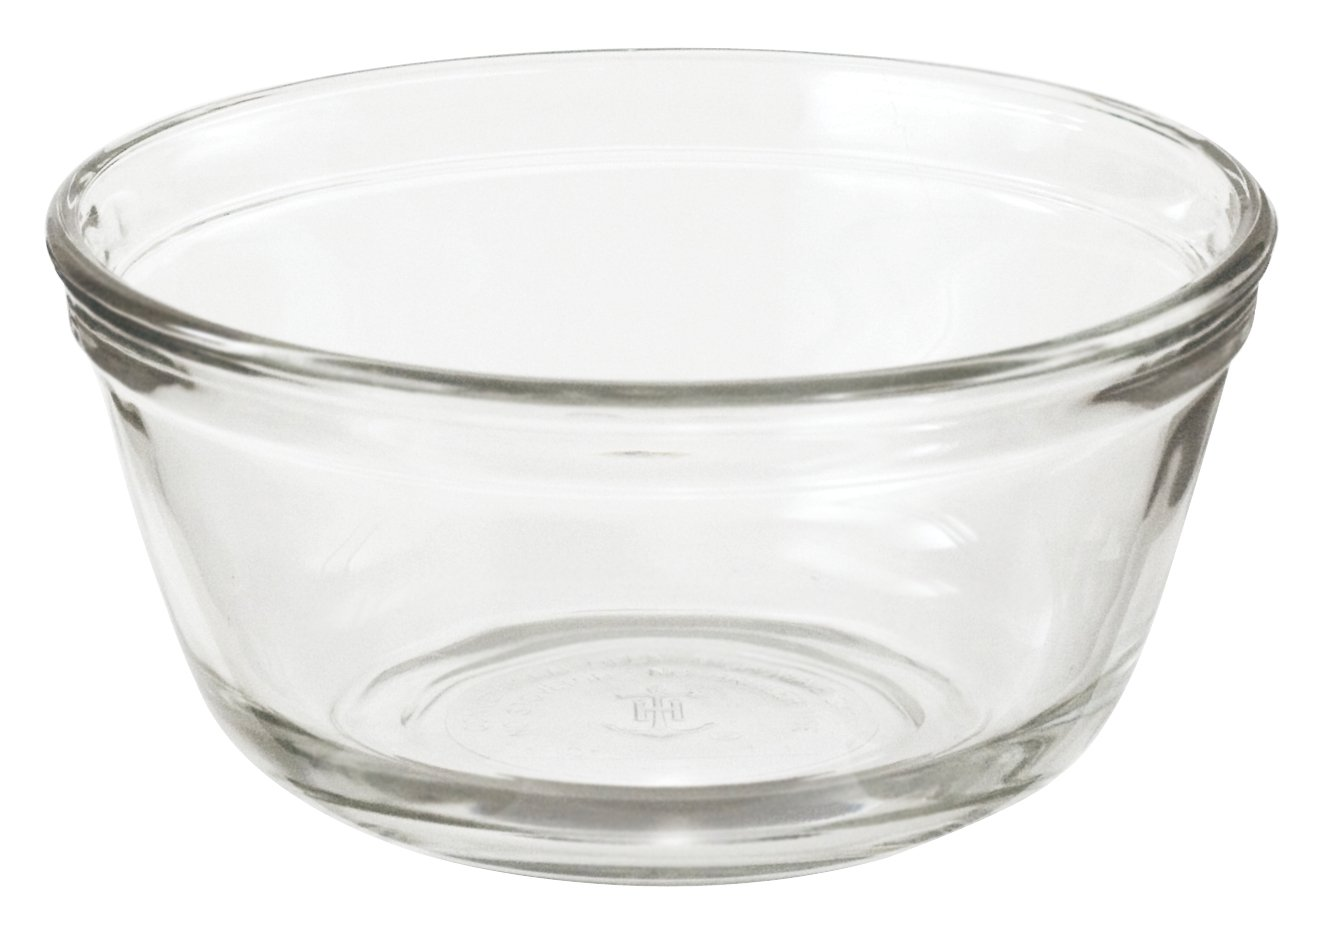 Anchor Hocking Mixing Bowl 4.0L Tempered Glass Dexam 77993